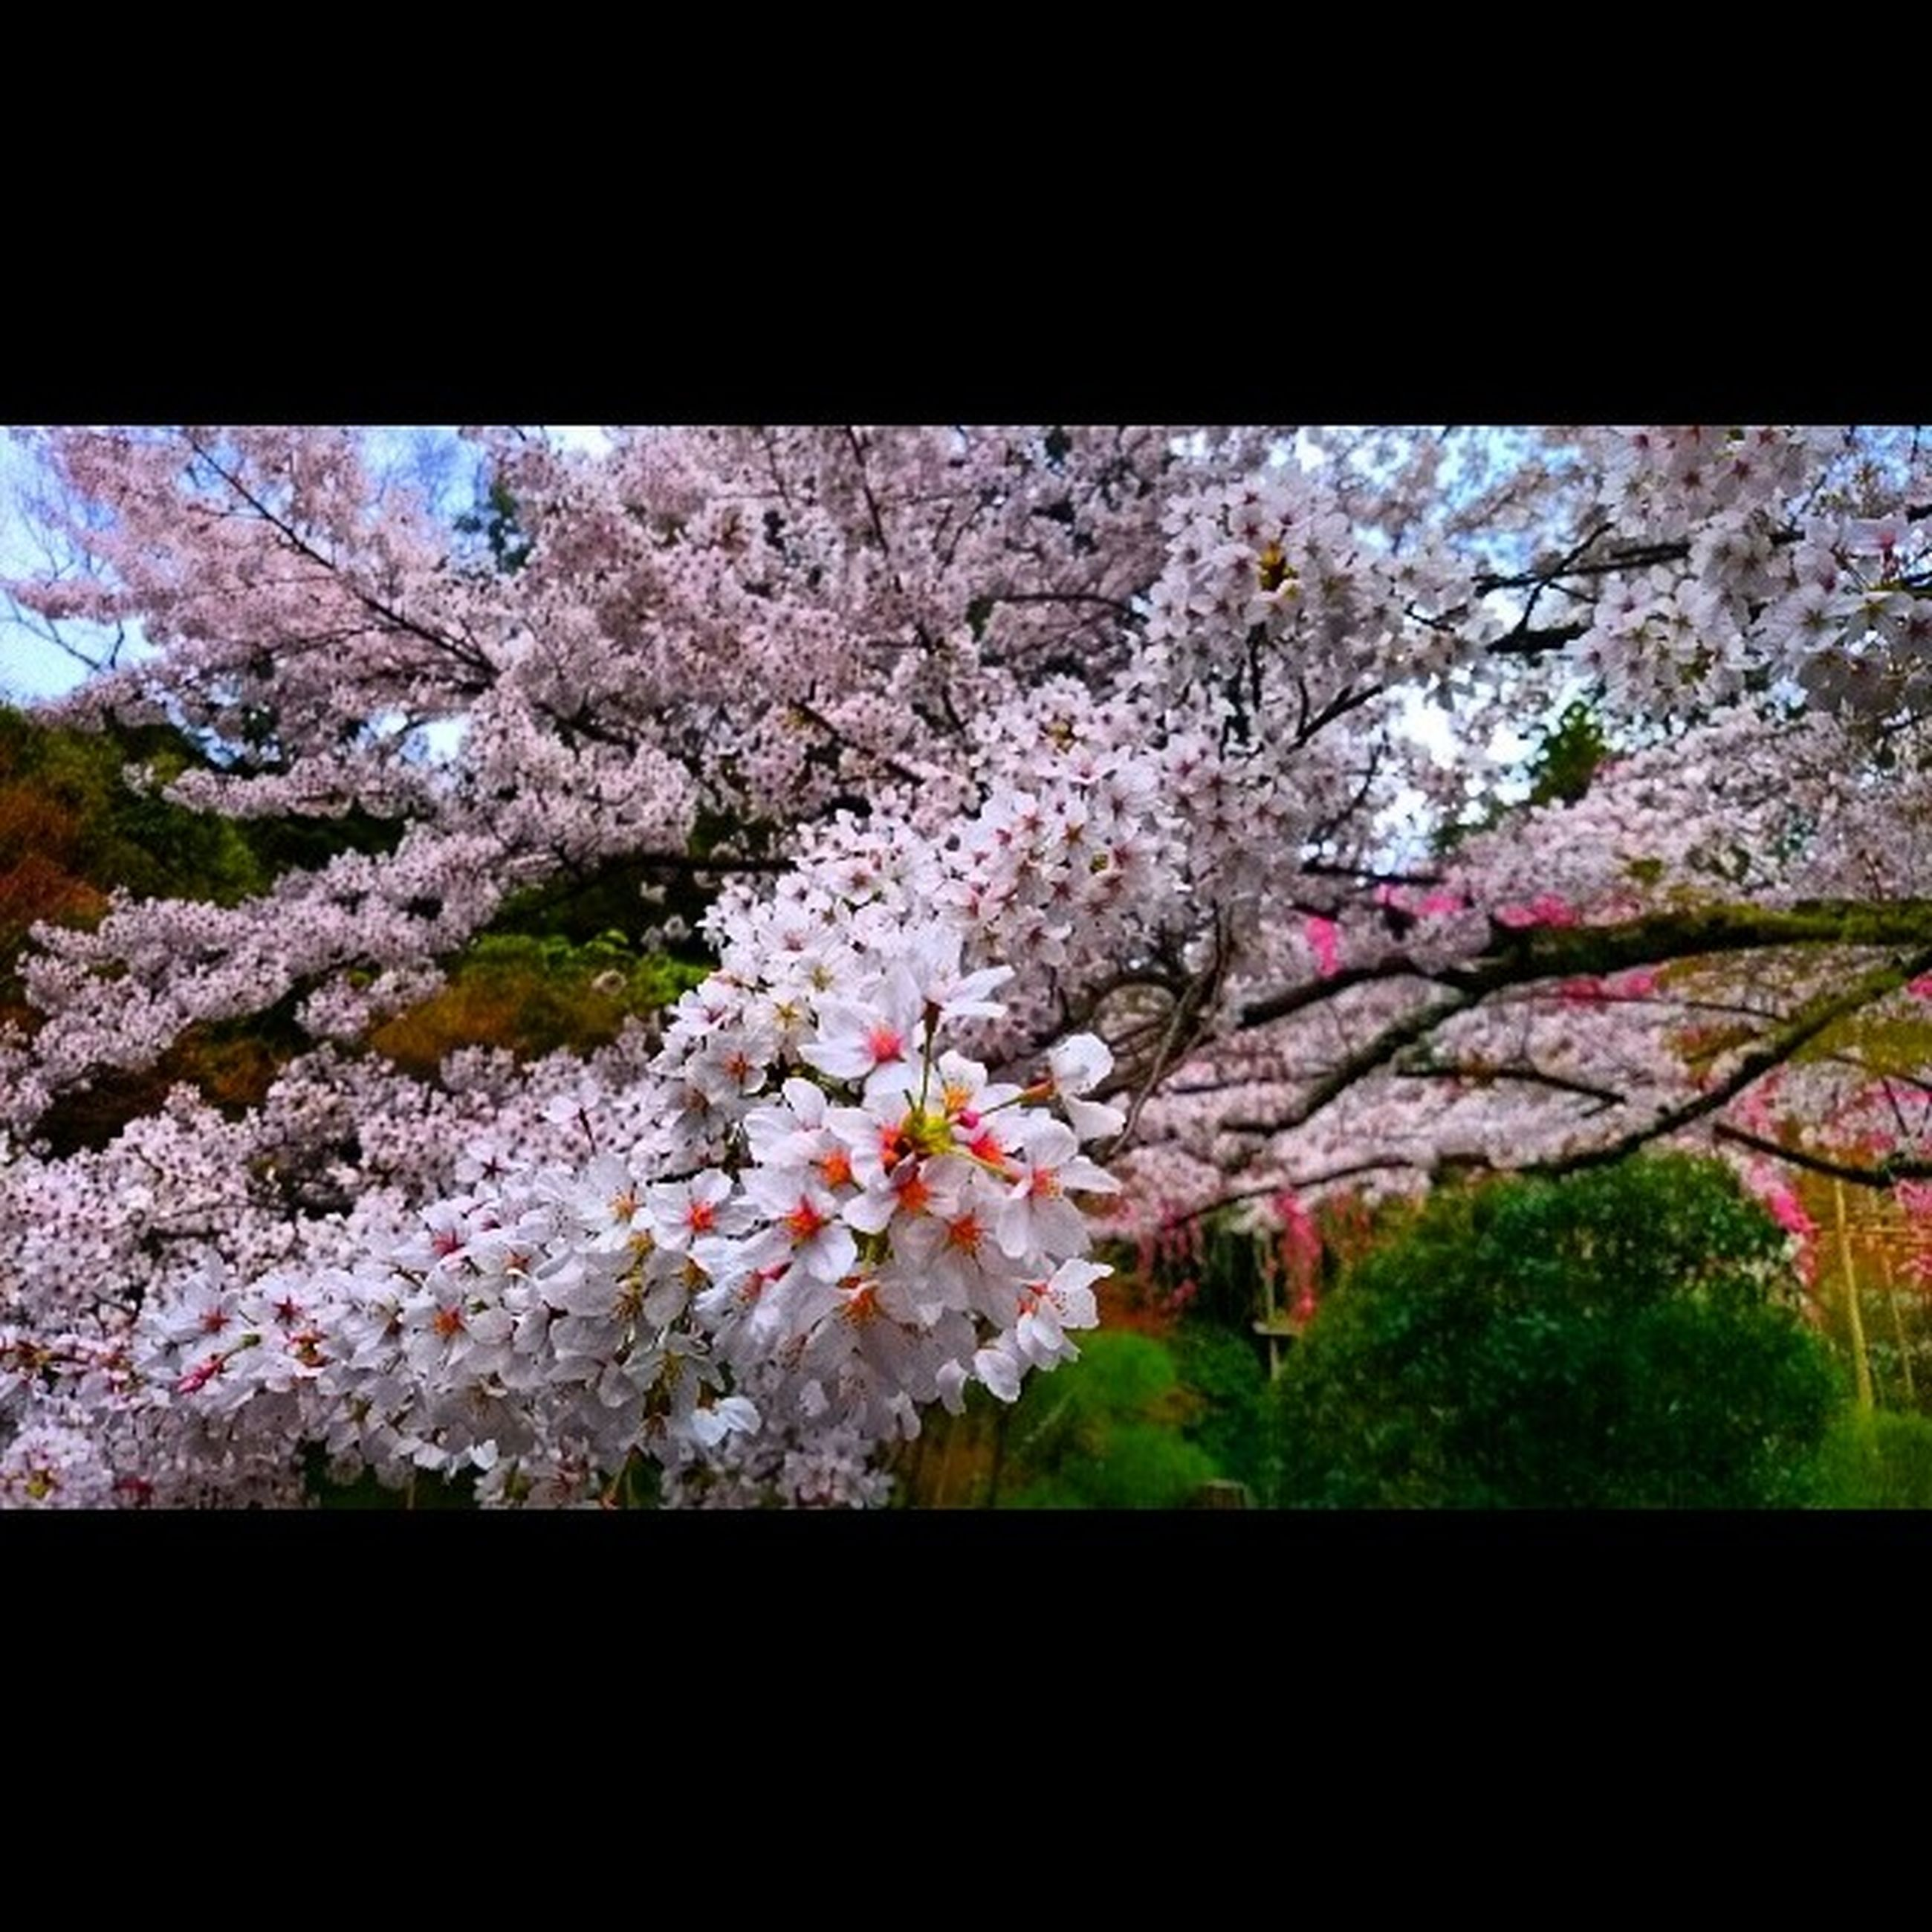 flower, freshness, fragility, tree, growth, beauty in nature, blossom, branch, cherry blossom, nature, cherry tree, in bloom, blooming, springtime, petal, pink color, botany, white color, day, season